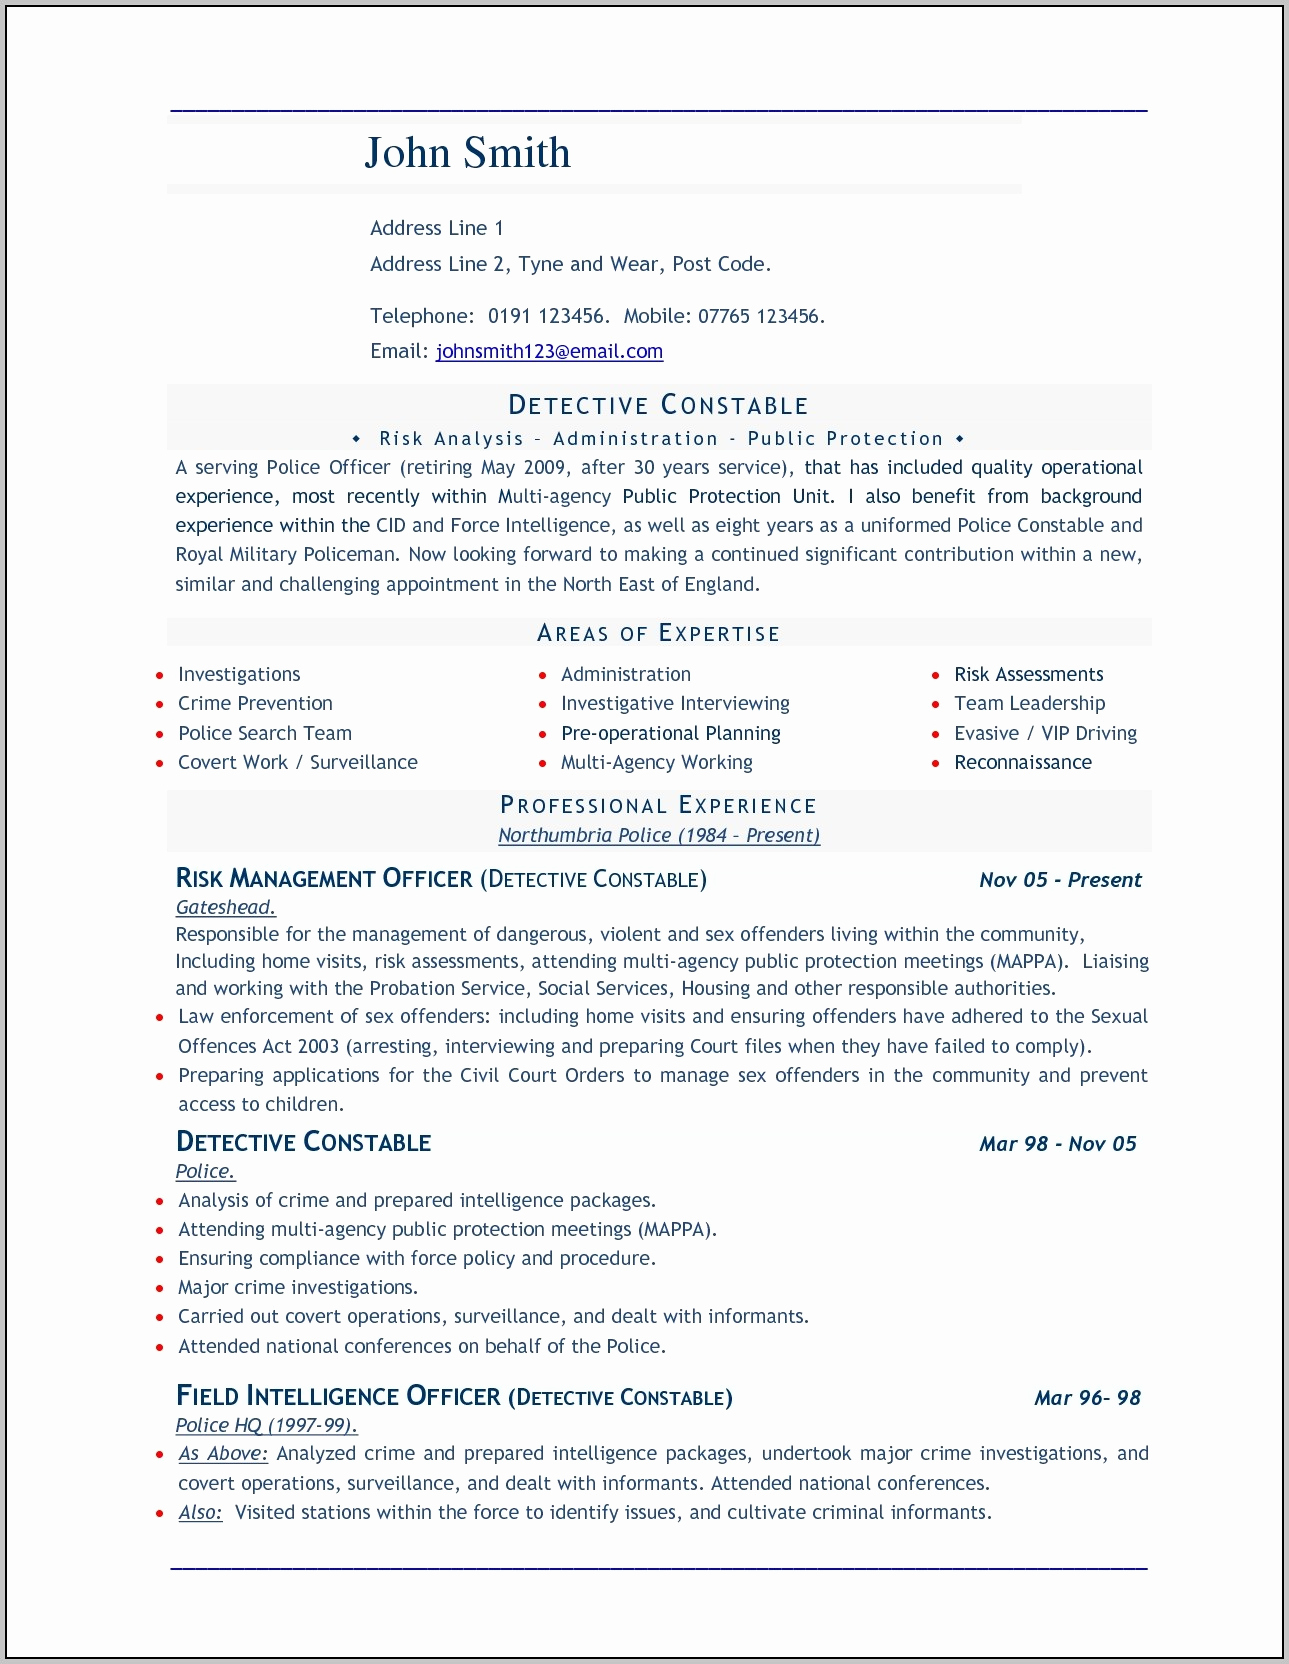 Curriculum Vitae Template Microsoft Word New Best Resume Template Word Download Microsoft Word Resume